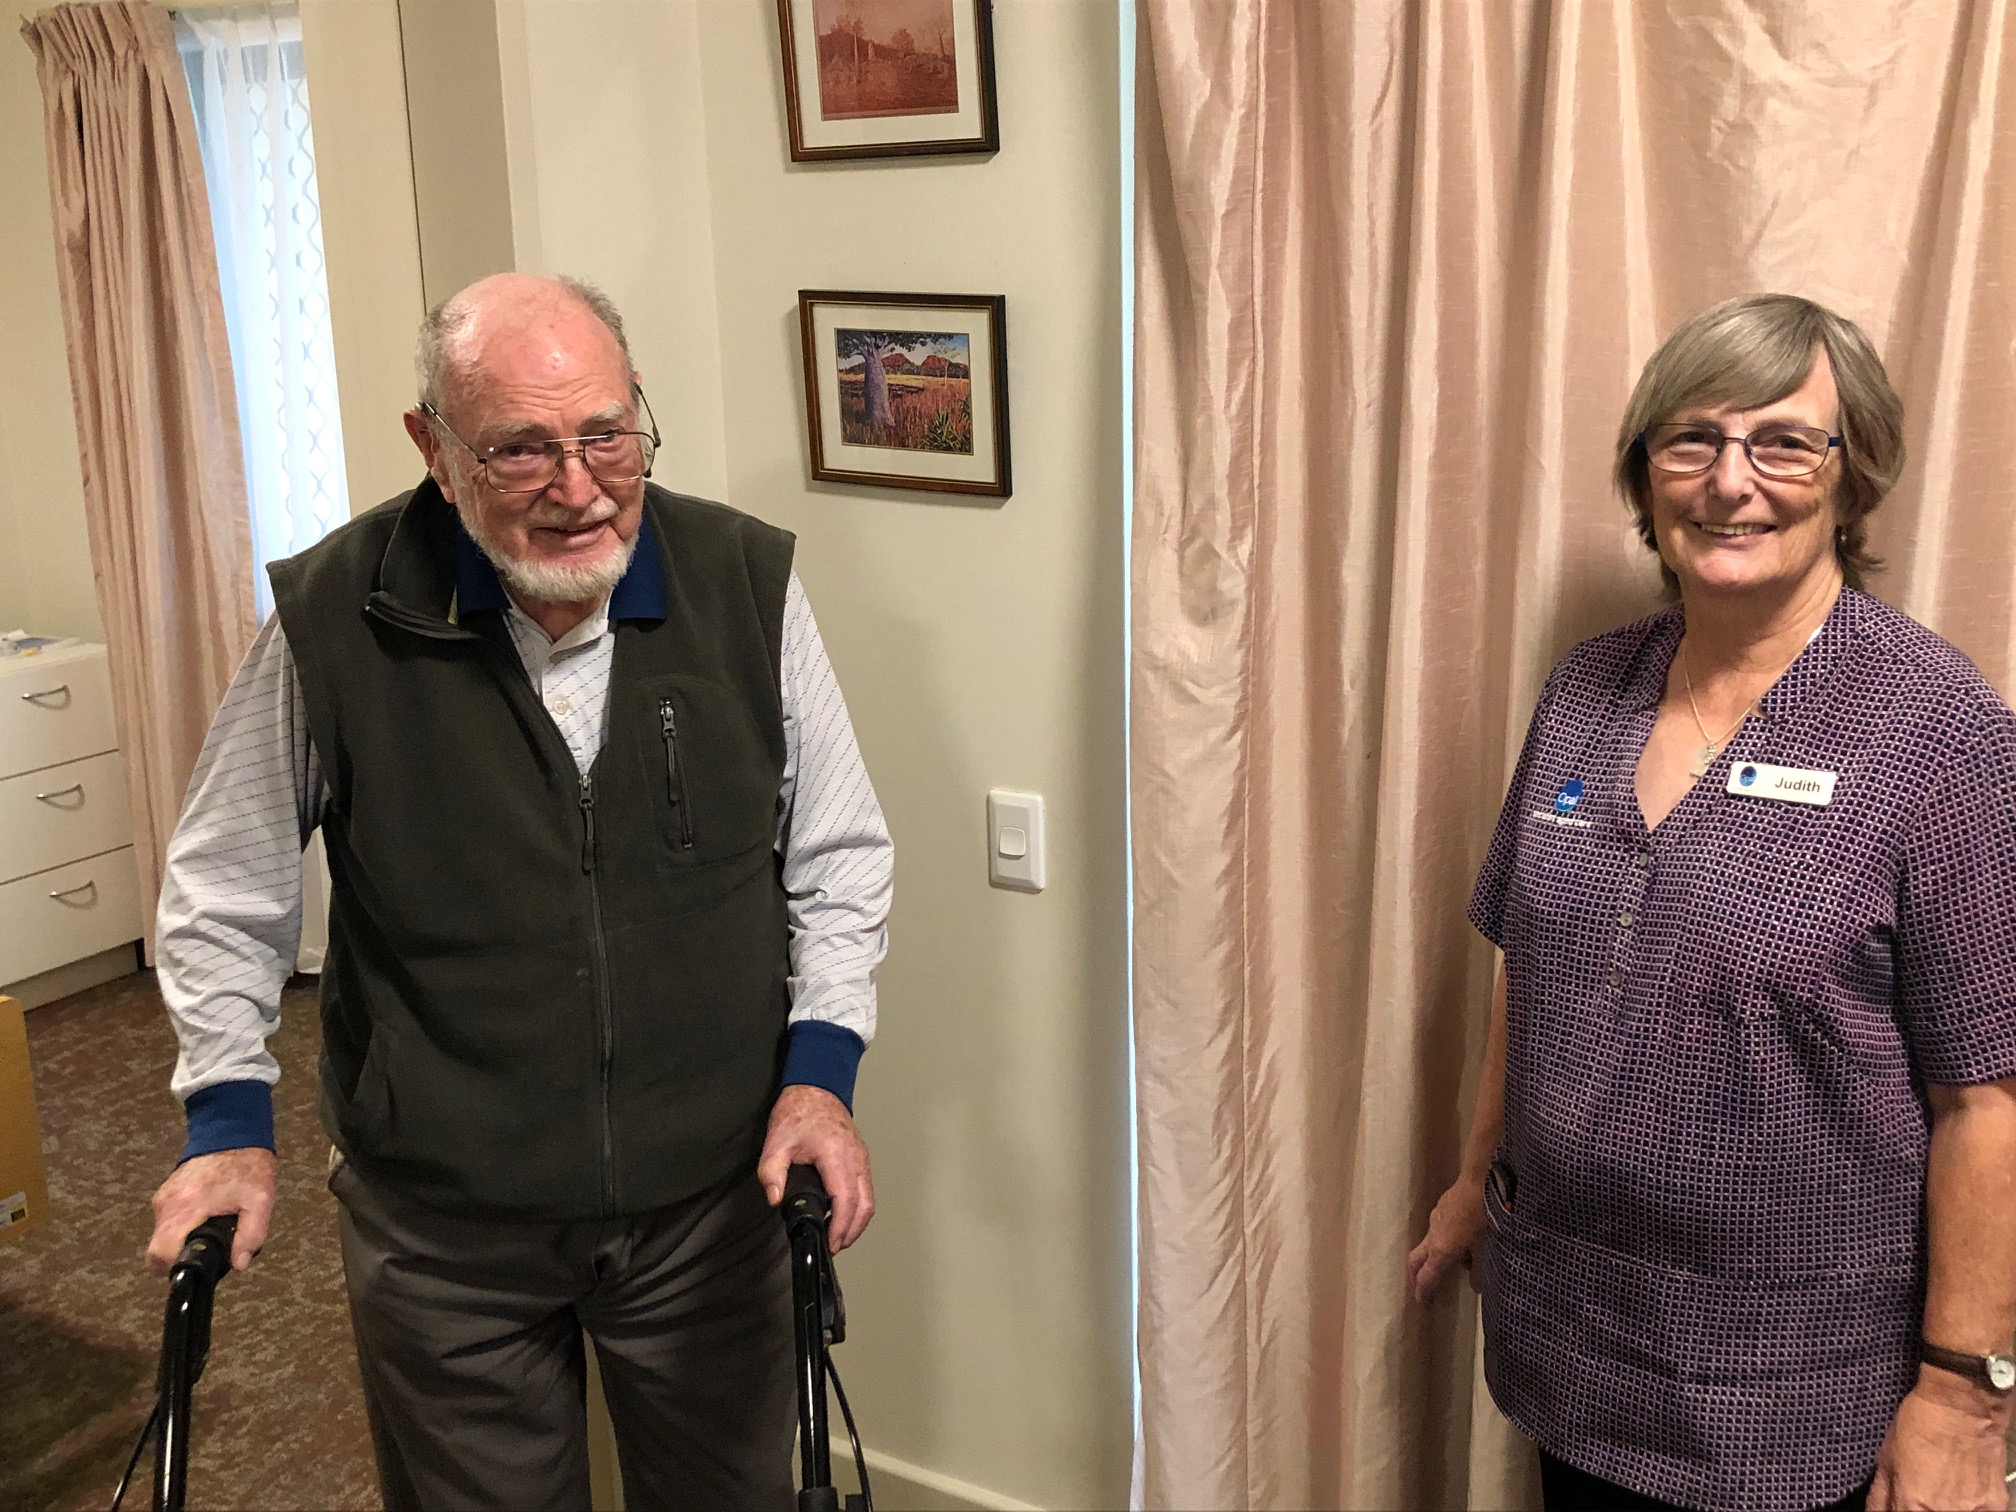 Resident tells carer he has found paradise